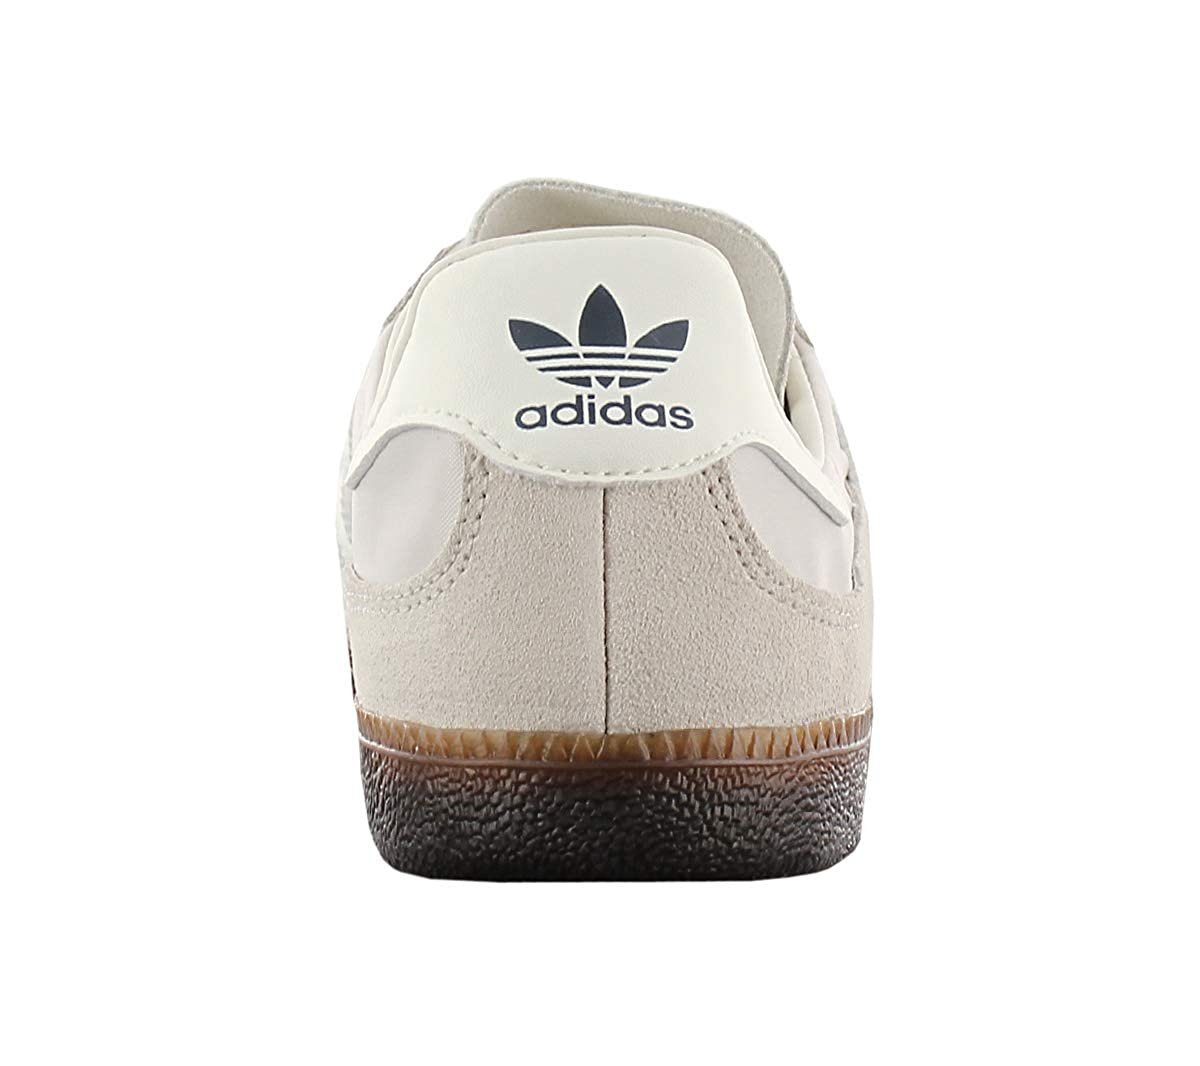 huge discount 117ef 27e1b adidas Mens Gt Wensley Spzl Fitness Shoes Amazon.co.uk Shoes